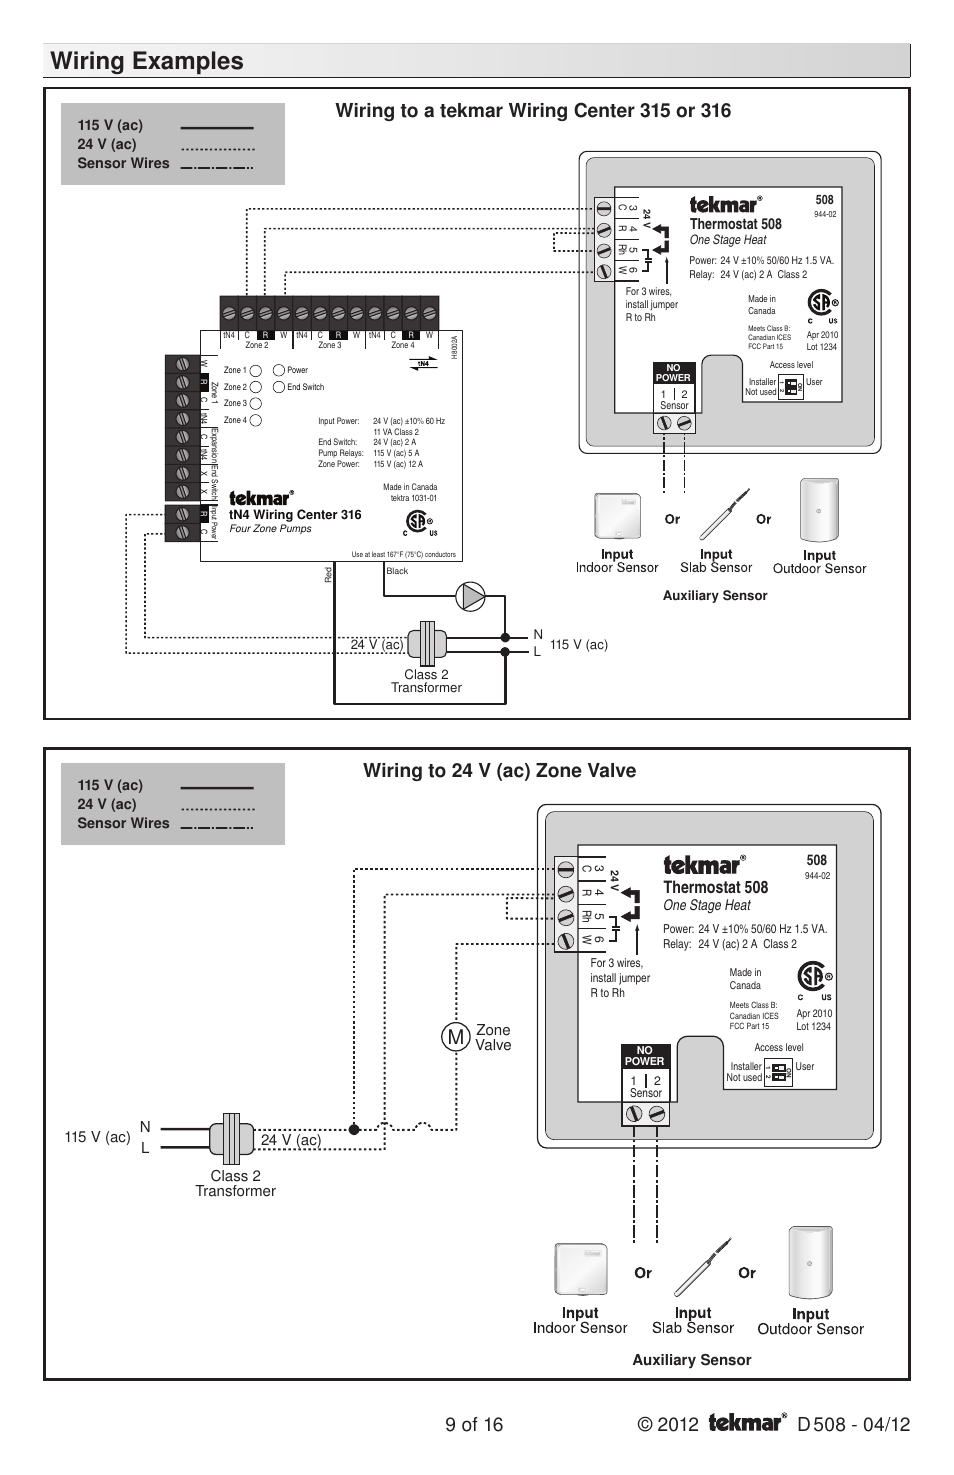 hight resolution of wiring examples thermostat 508 zone valve tekmar 509 thermostat installation user manual page 9 16